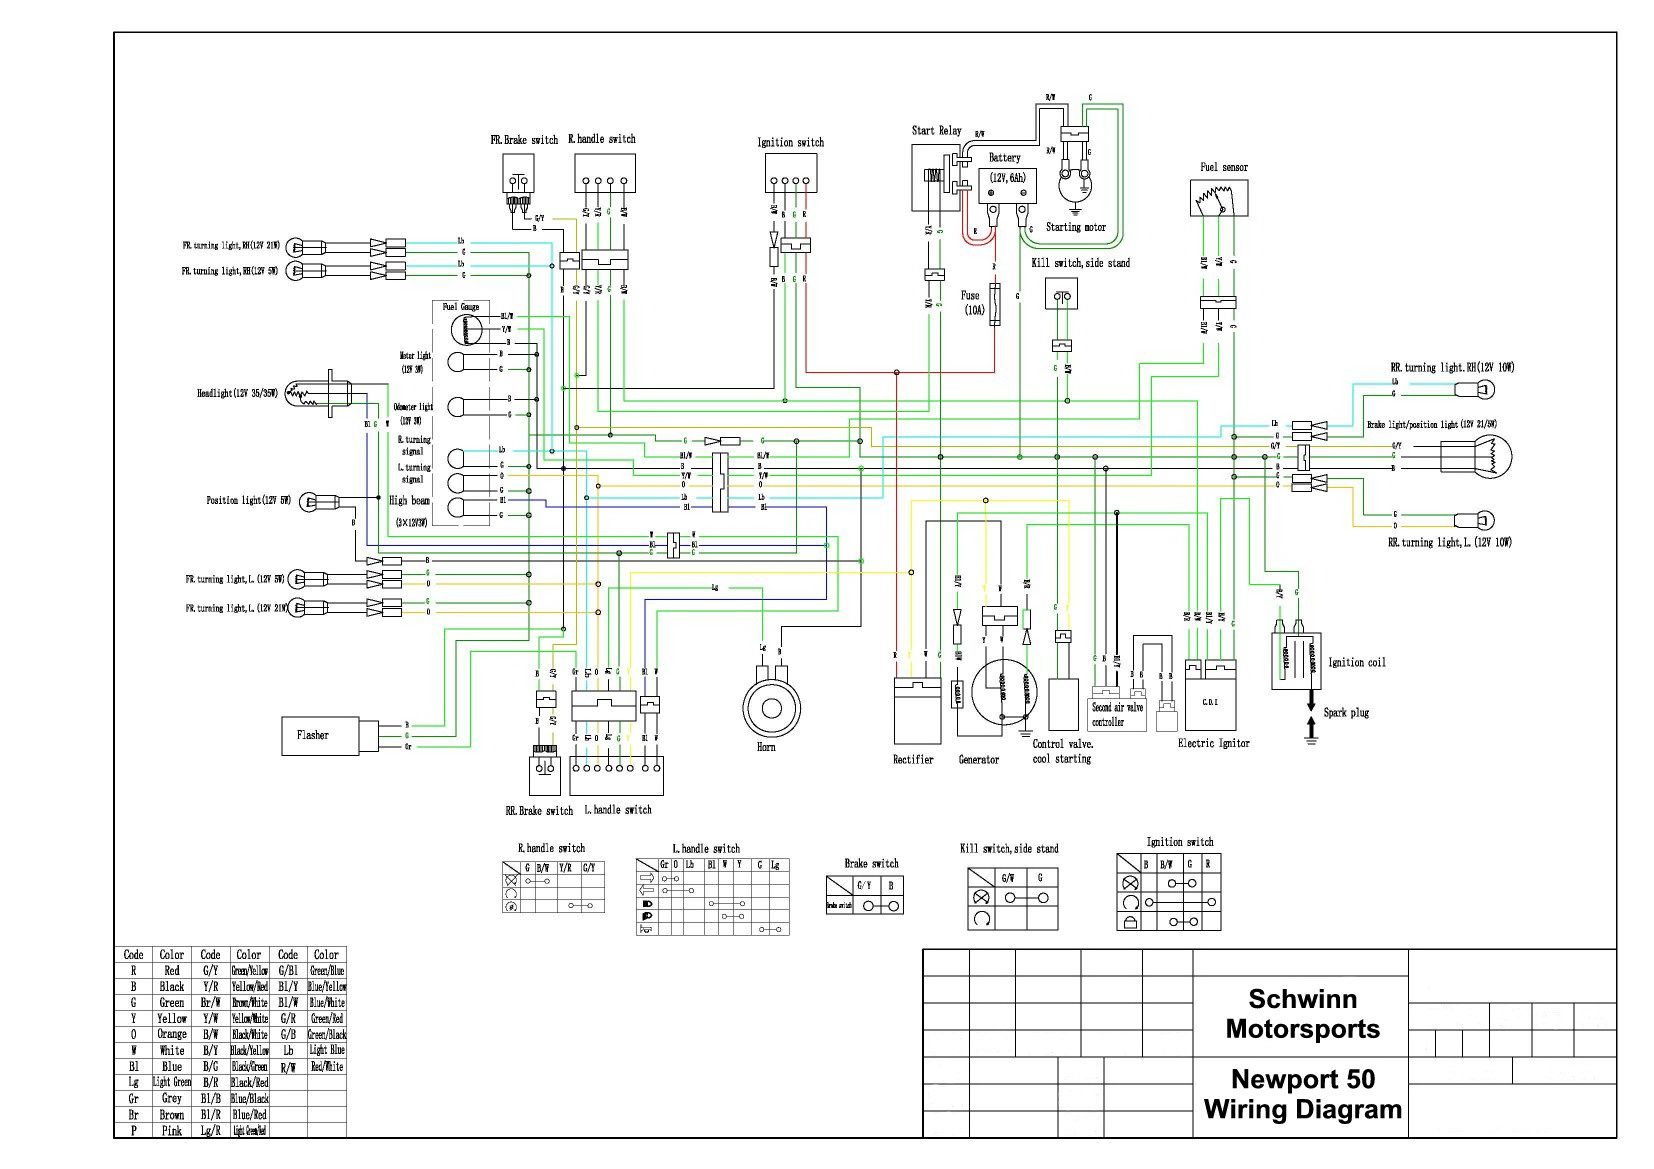 Wiring Diagram For Electric Scooter Http Bookingritzcarlton Info Wiring Diagram For Electric Sc Electrical Wiring Diagram Motorcycle Wiring Chinese Scooters